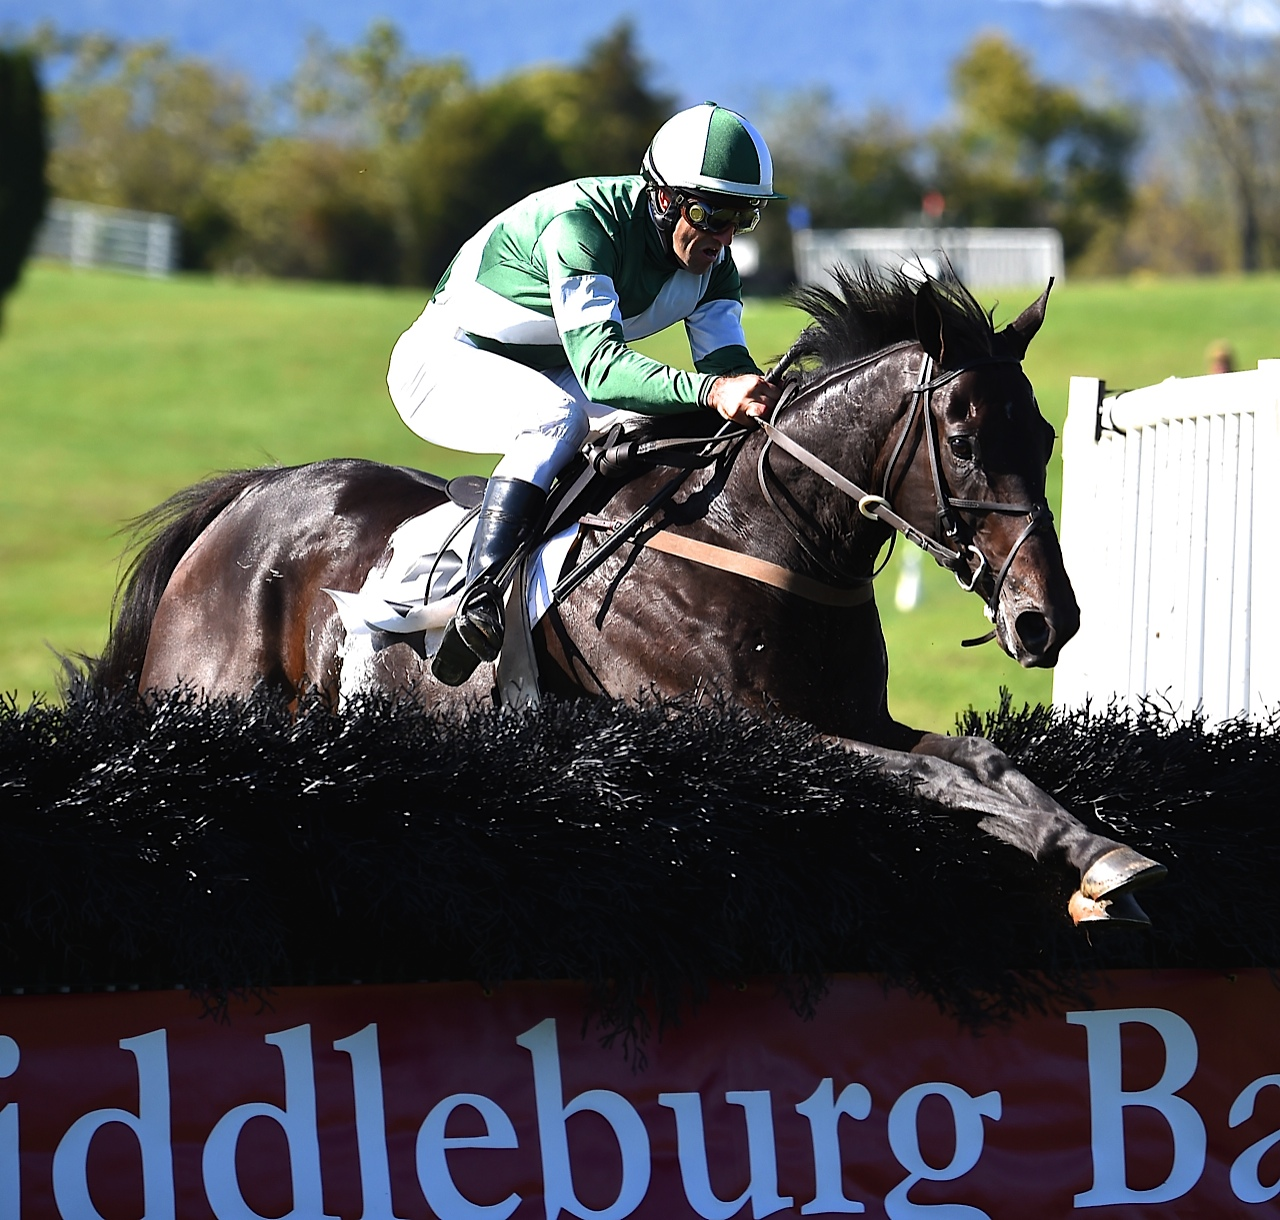 Noble Stables' King Of All Diamonds won the maiden hurdle race. Photo courtesy Lees.